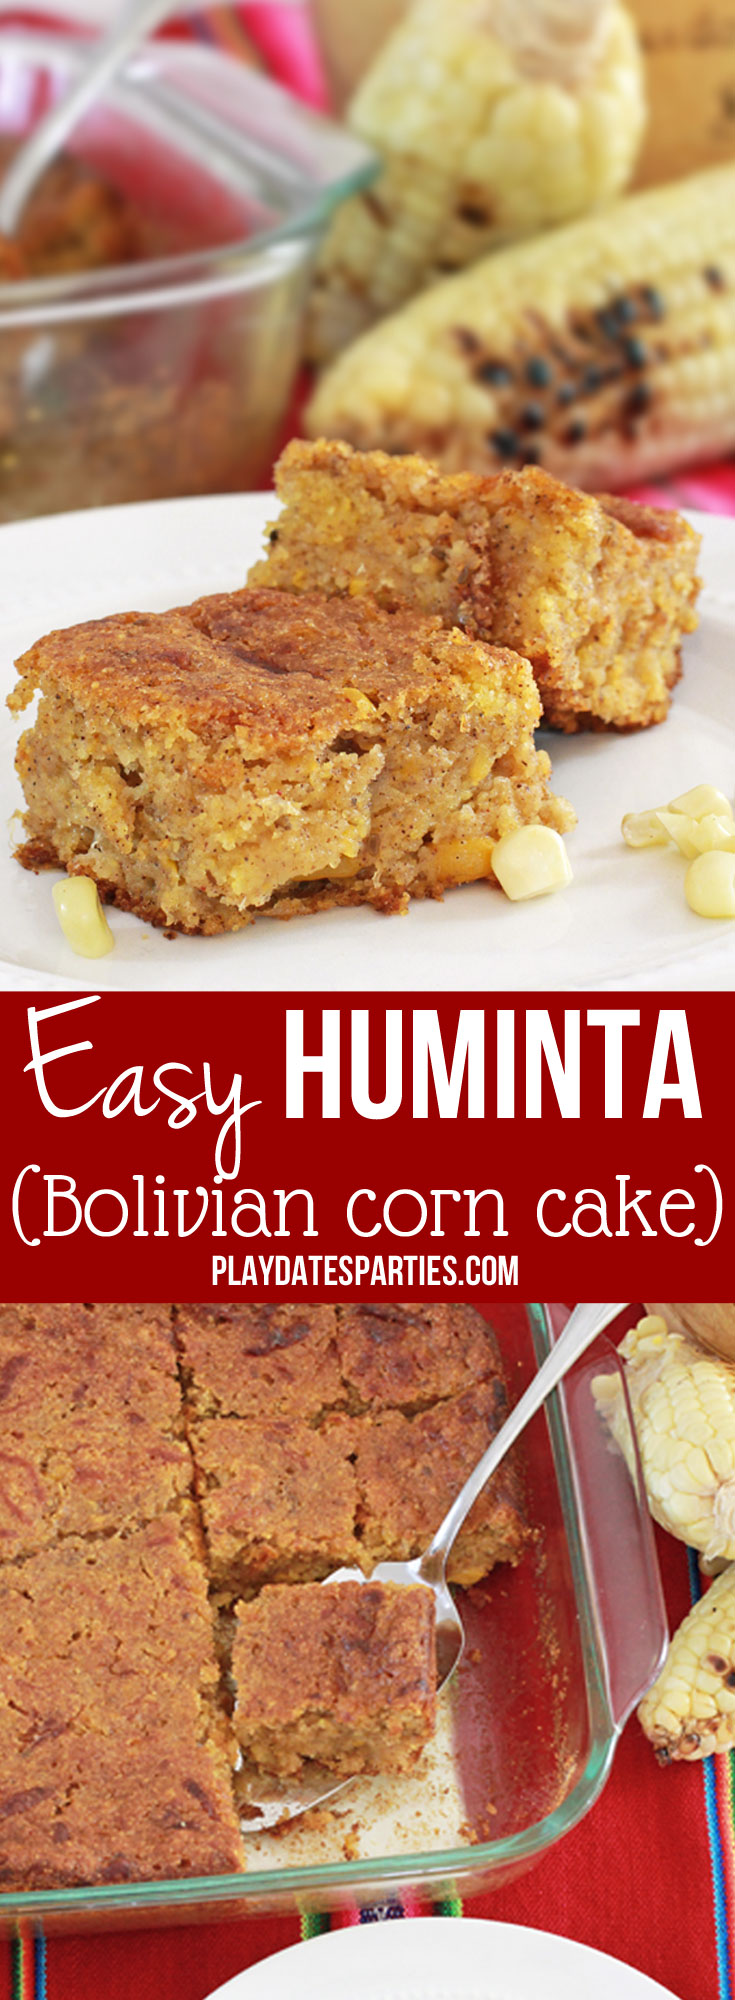 This is the most delicious and unique corn cake #recipe. Huminta, or Bolivian #corn cake is dense, sweet, and full of flavor. Take it to your next #potluck or #holiday gathering and prepare to be asked for this delicious recipe!